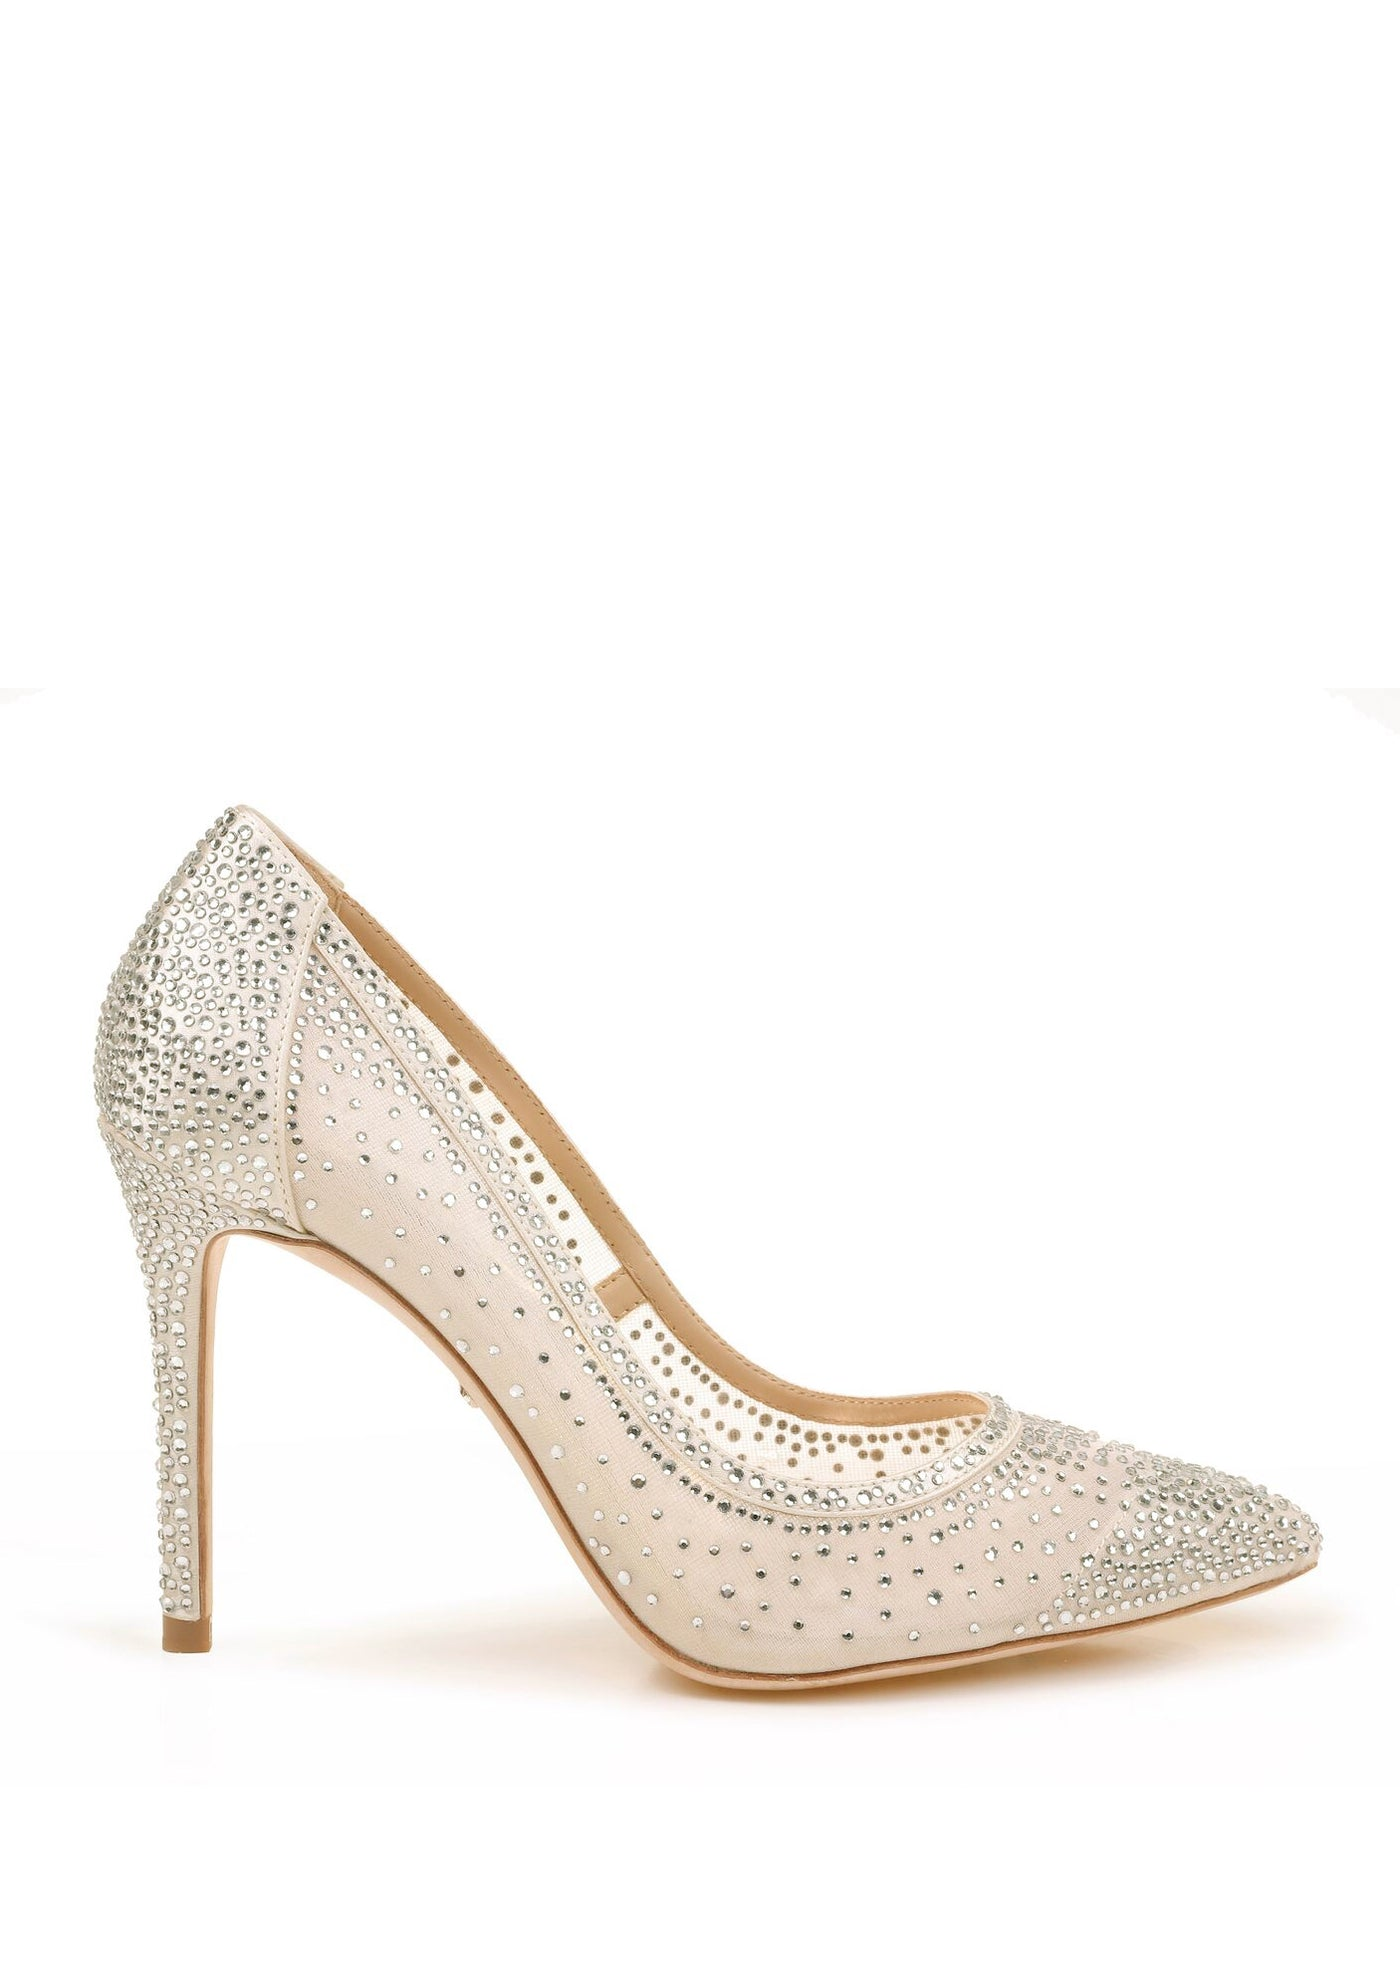 Weslee, Shoes, Badgley Mischka - Eternal Bridal